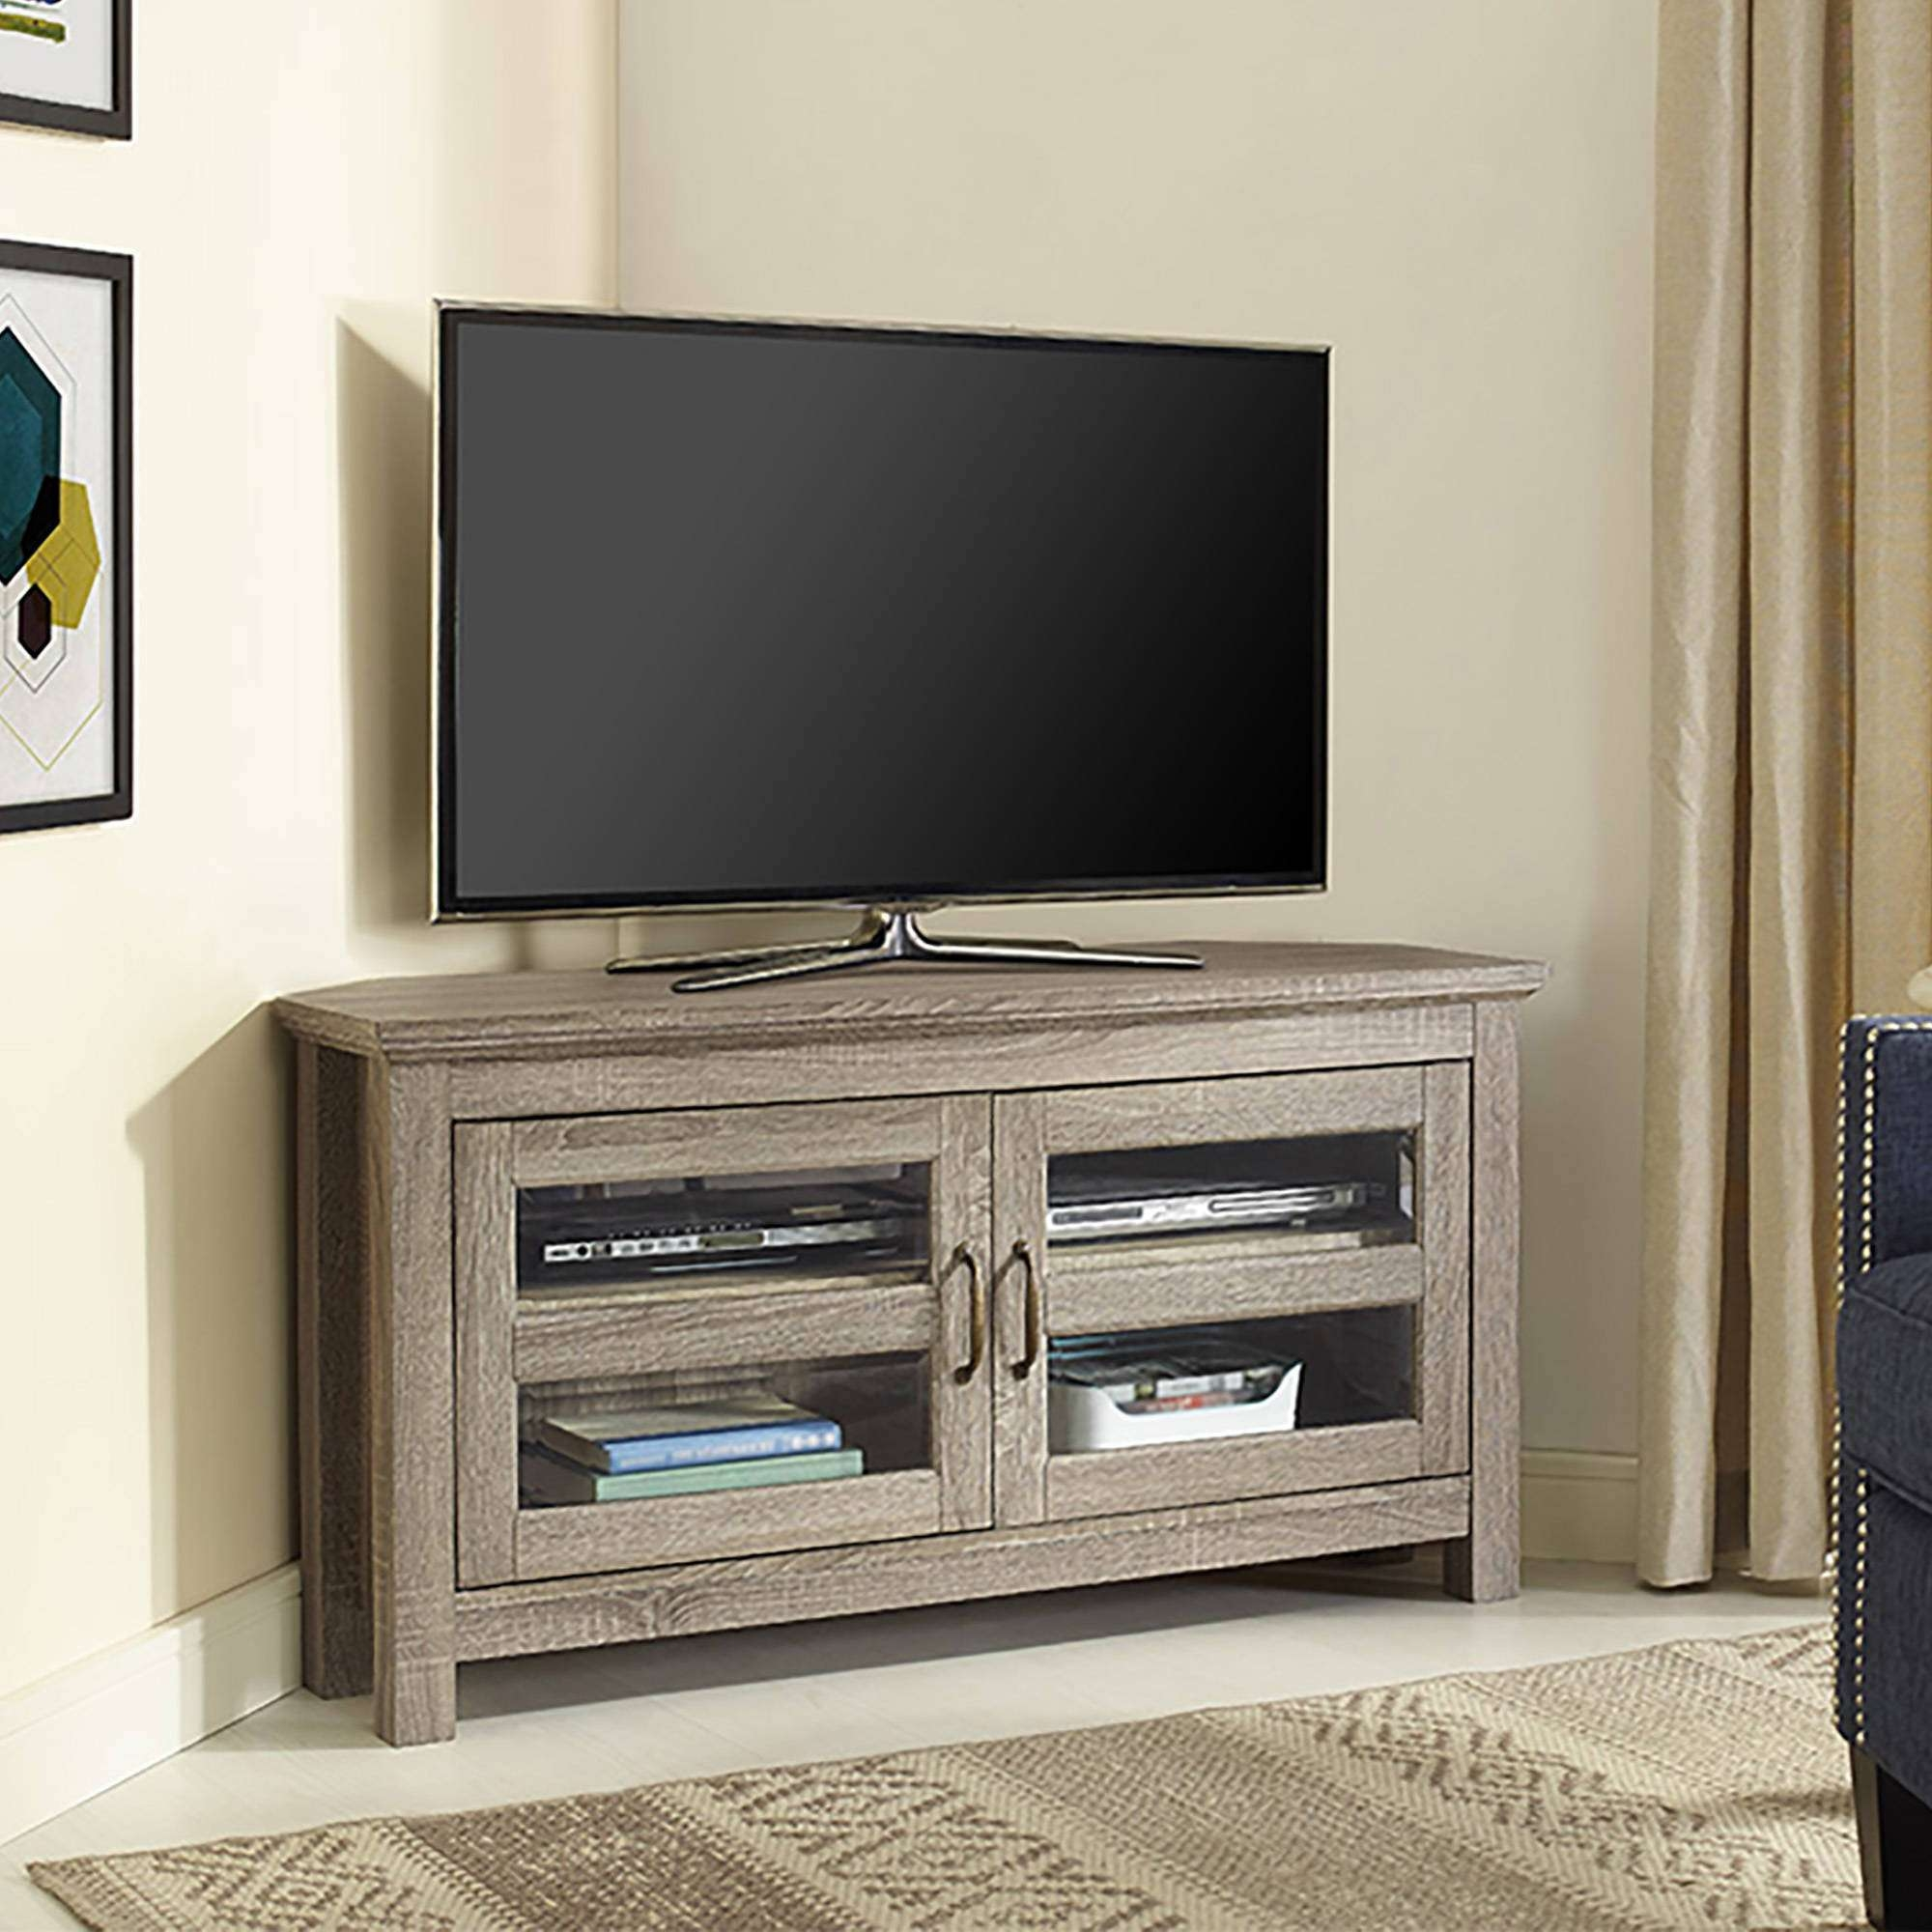 Tv : Wonderful Expresso Tv Stands Baxton Studio Matlock Modern With Expresso Tv Stands (View 14 of 15)